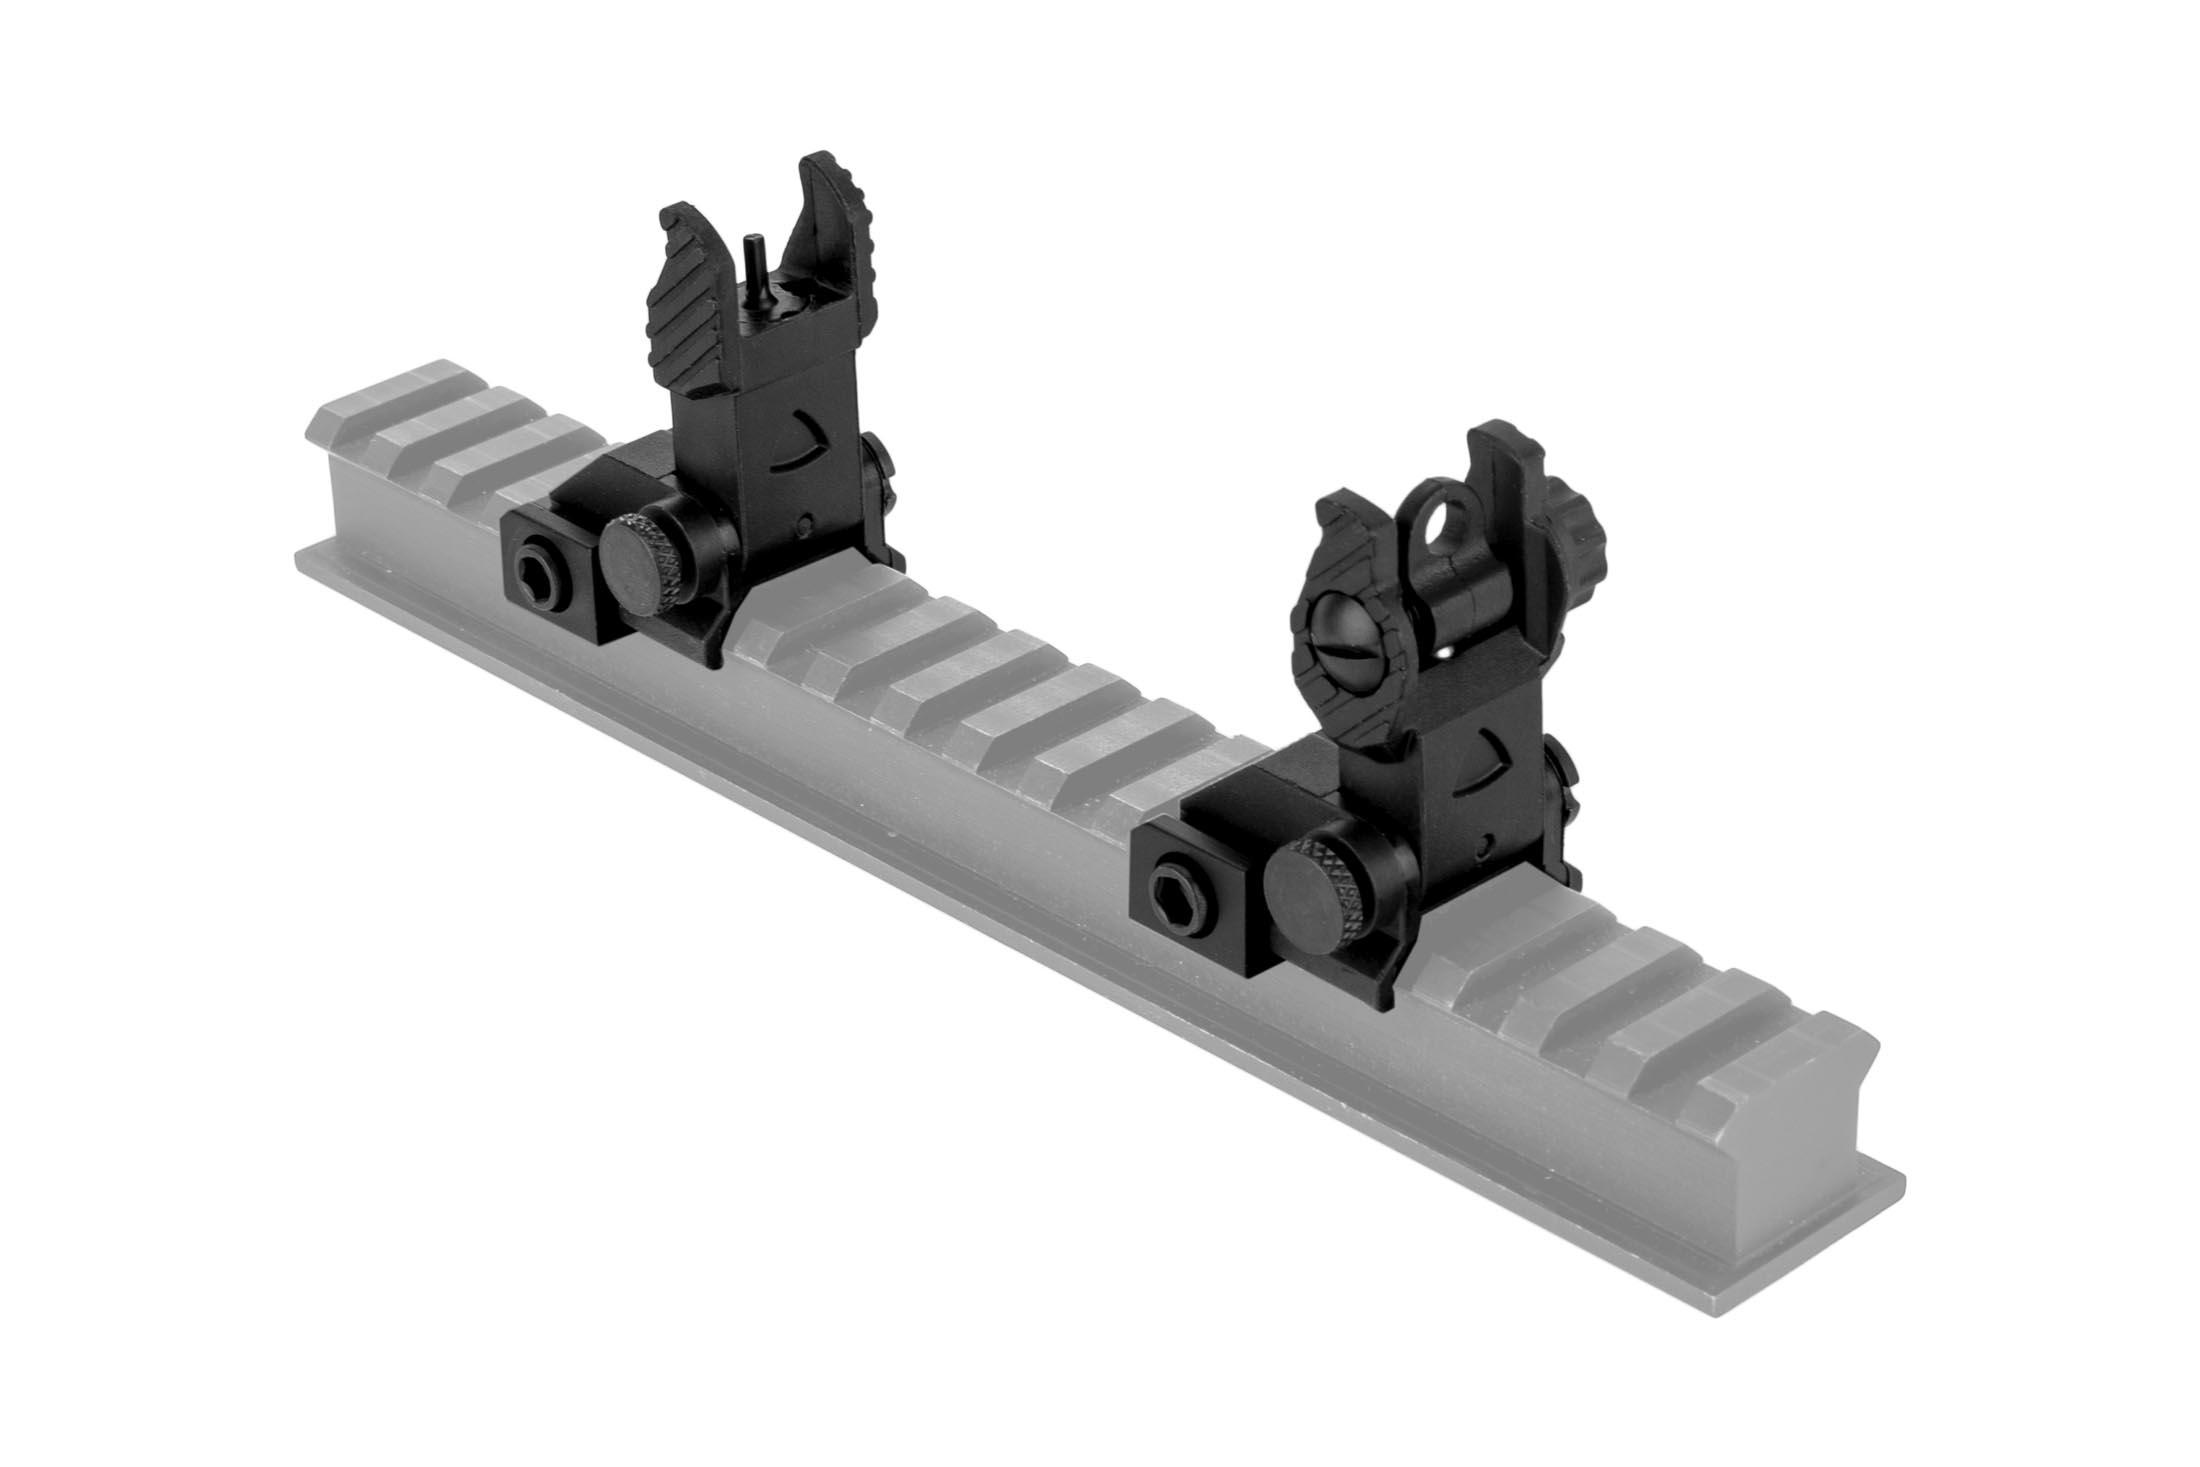 The Guntec USA EZ back up iron sights attach directly to picatinny rail systems